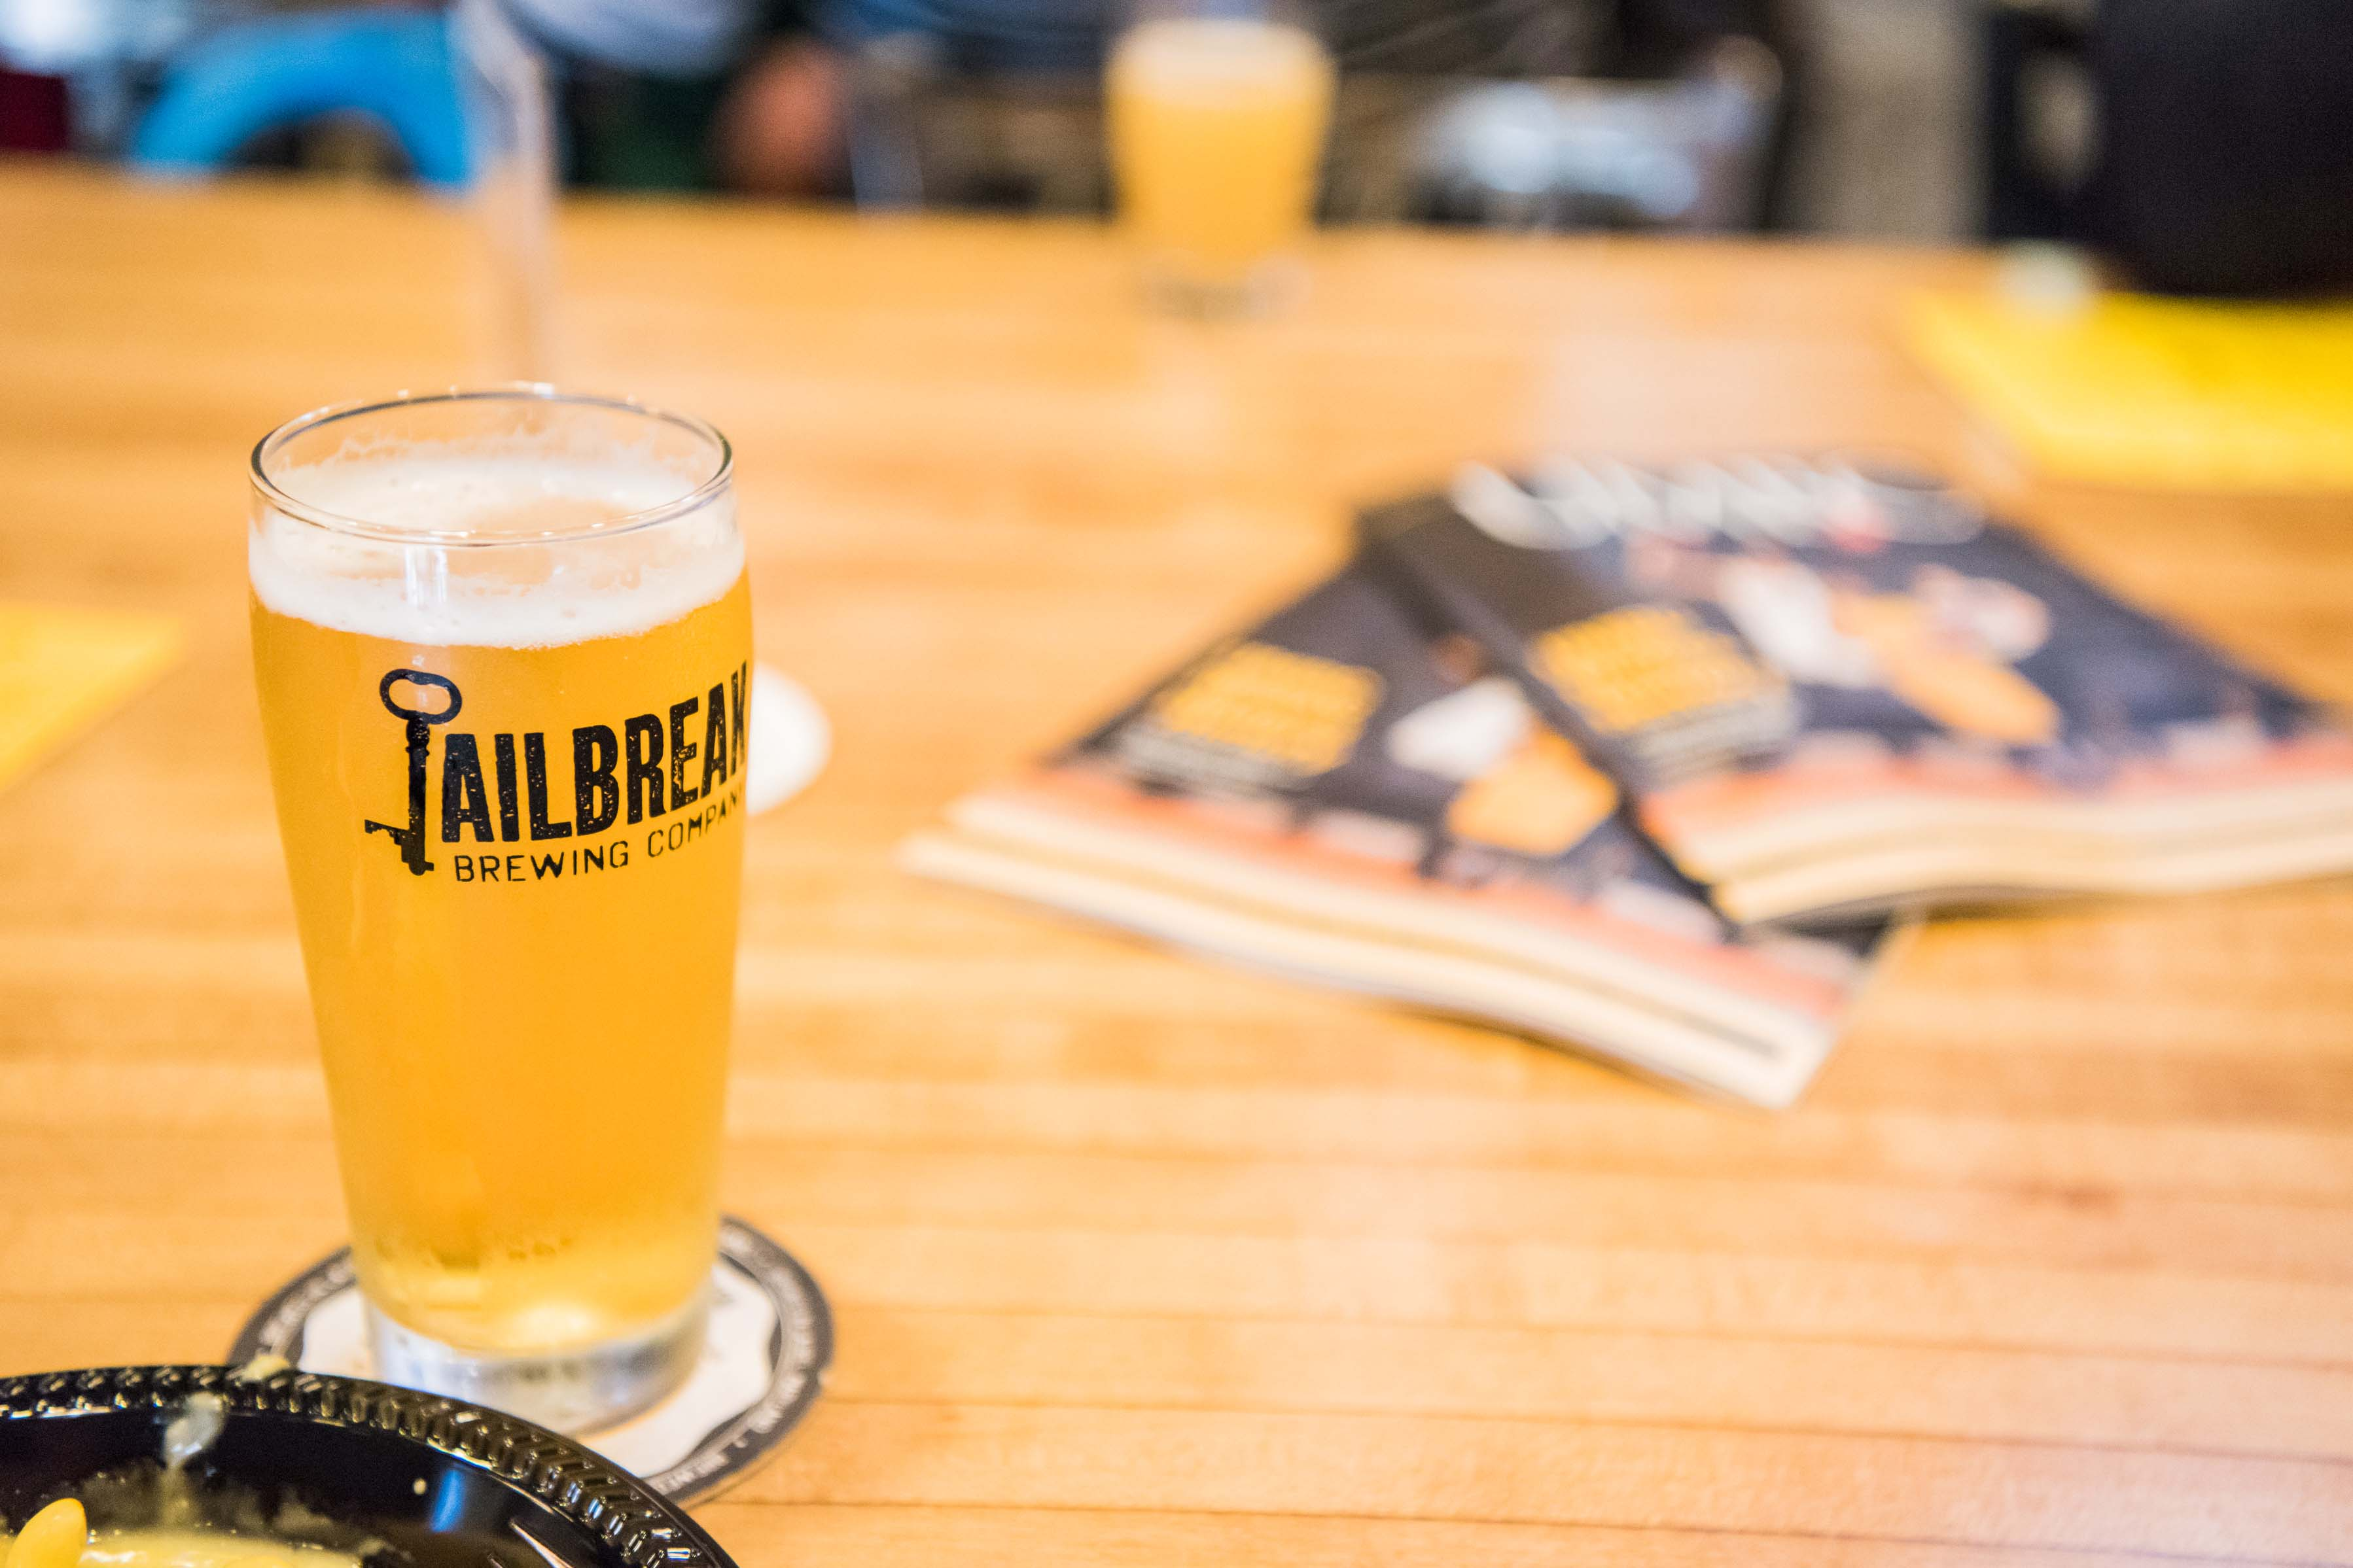 Jailbreak brewing company glass with beer on table